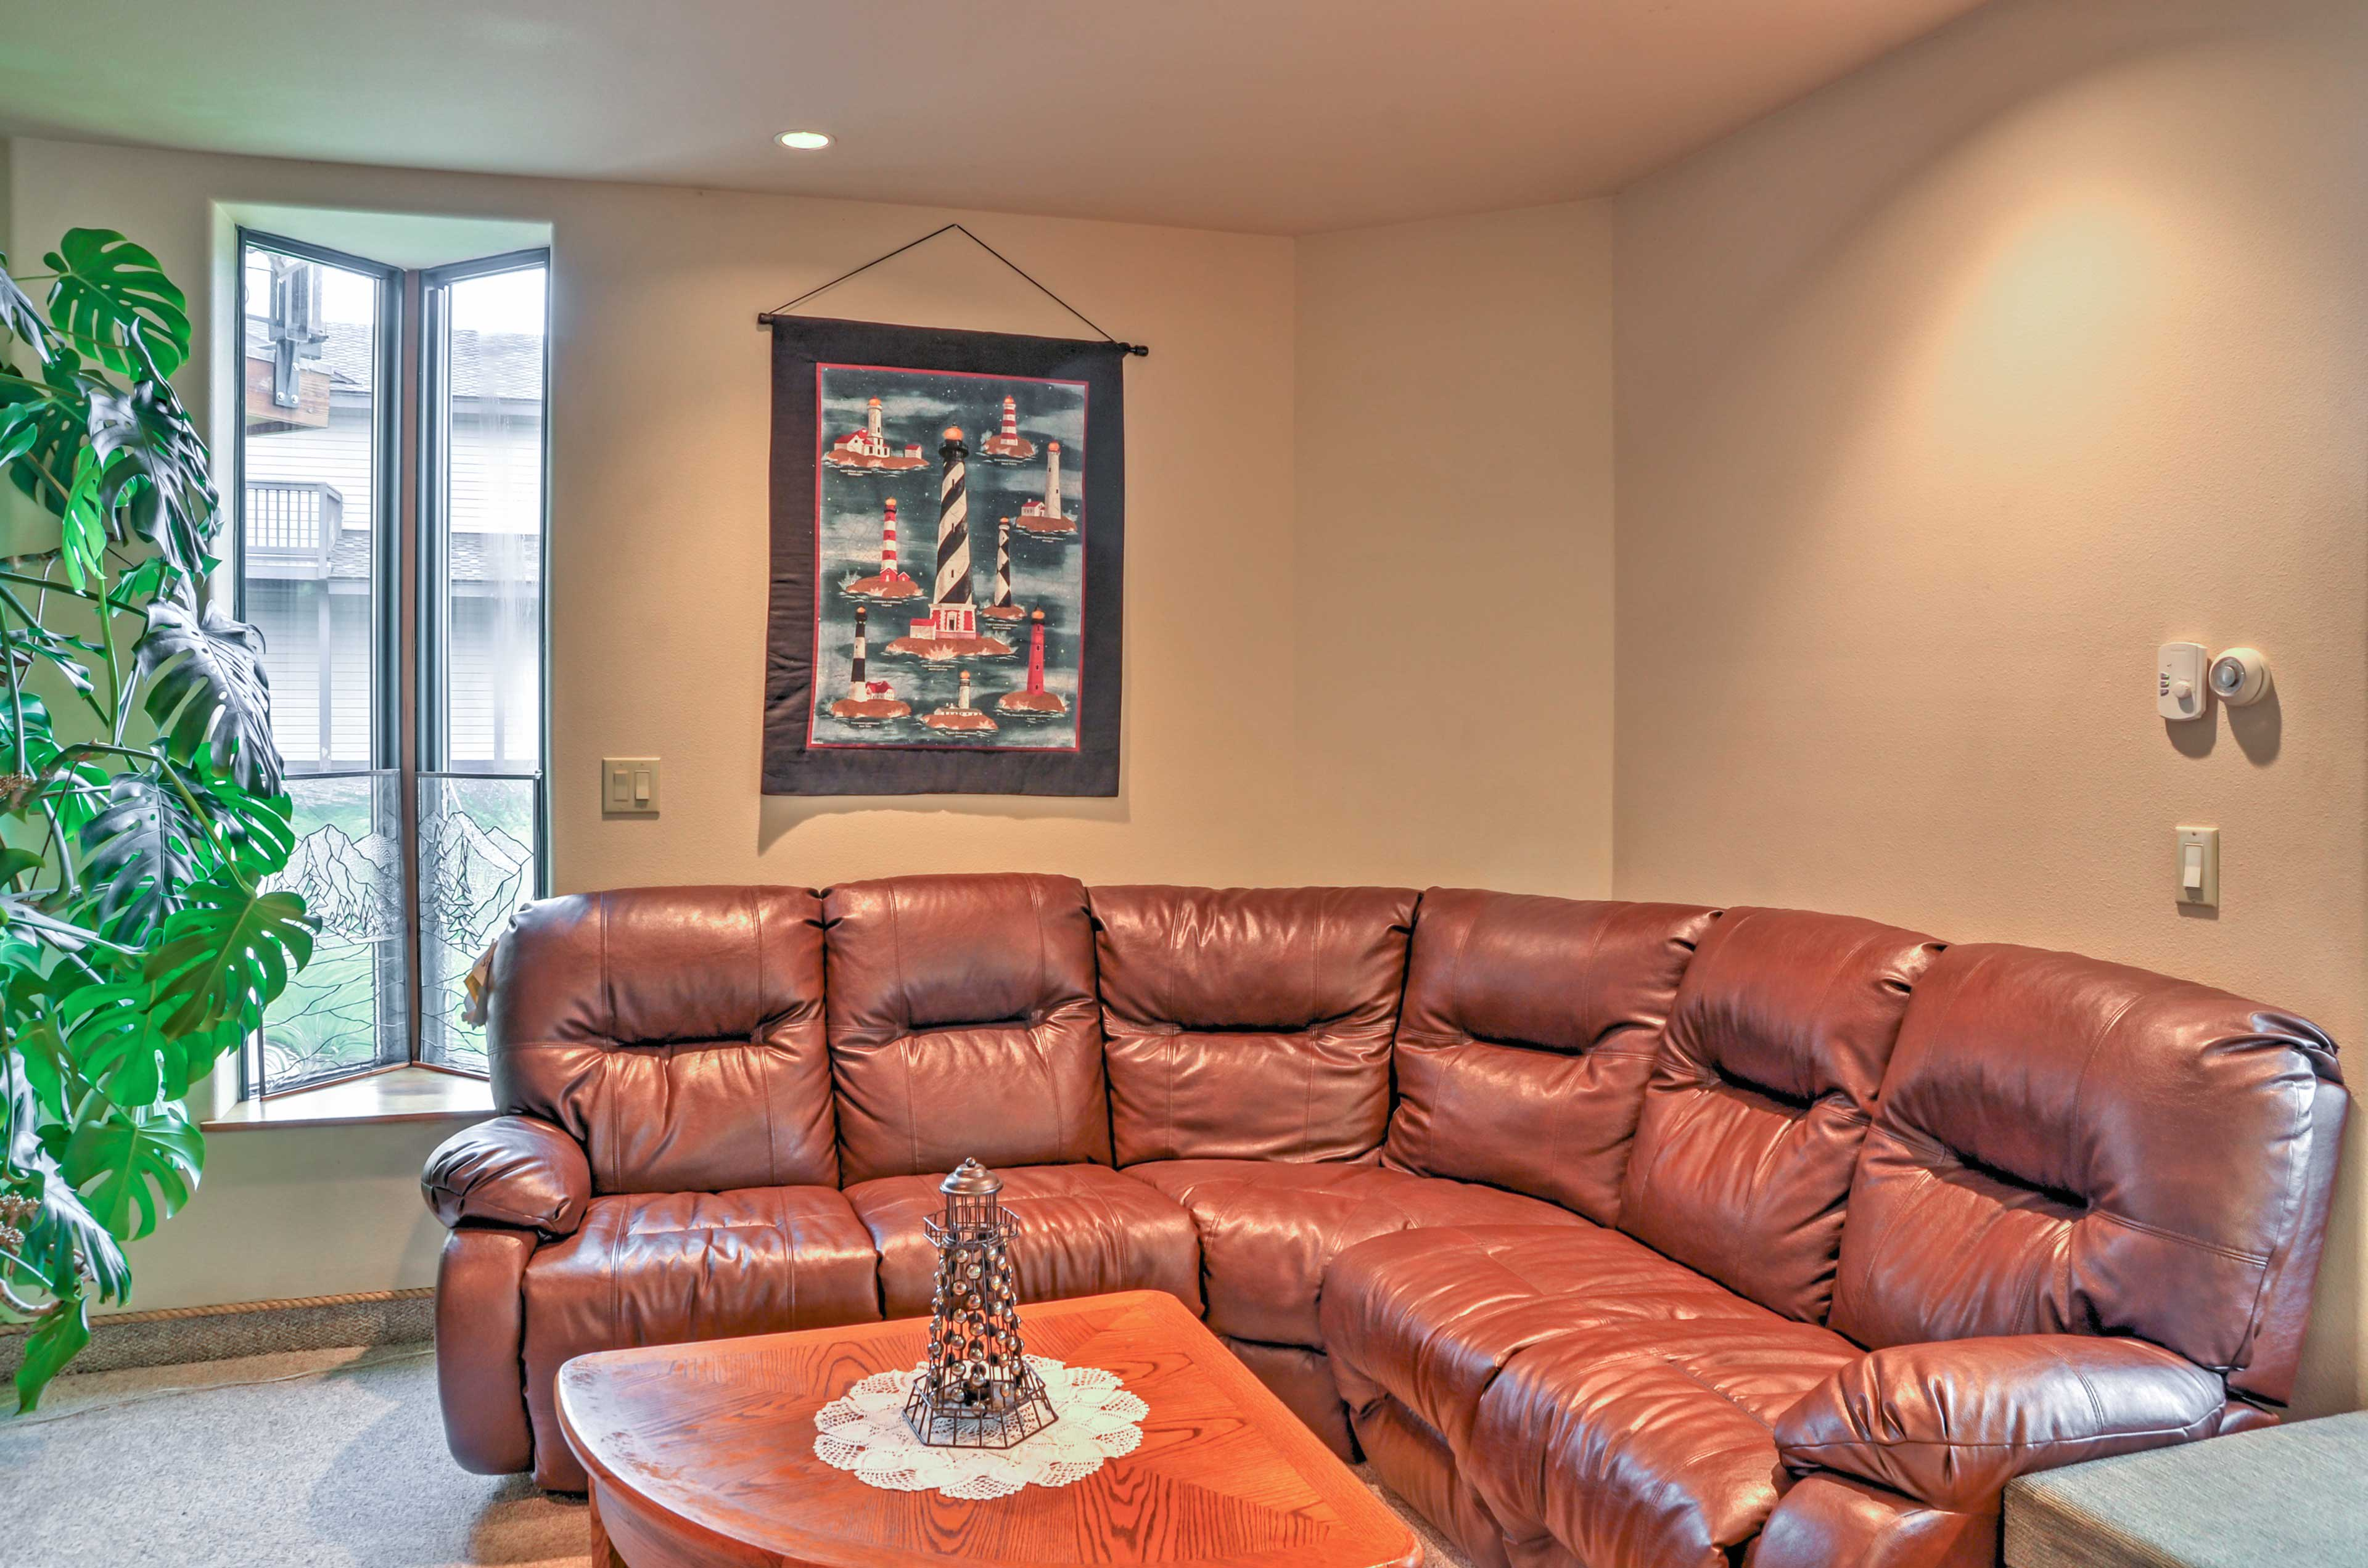 Kick back with your loved ones on the giant leather sofa!